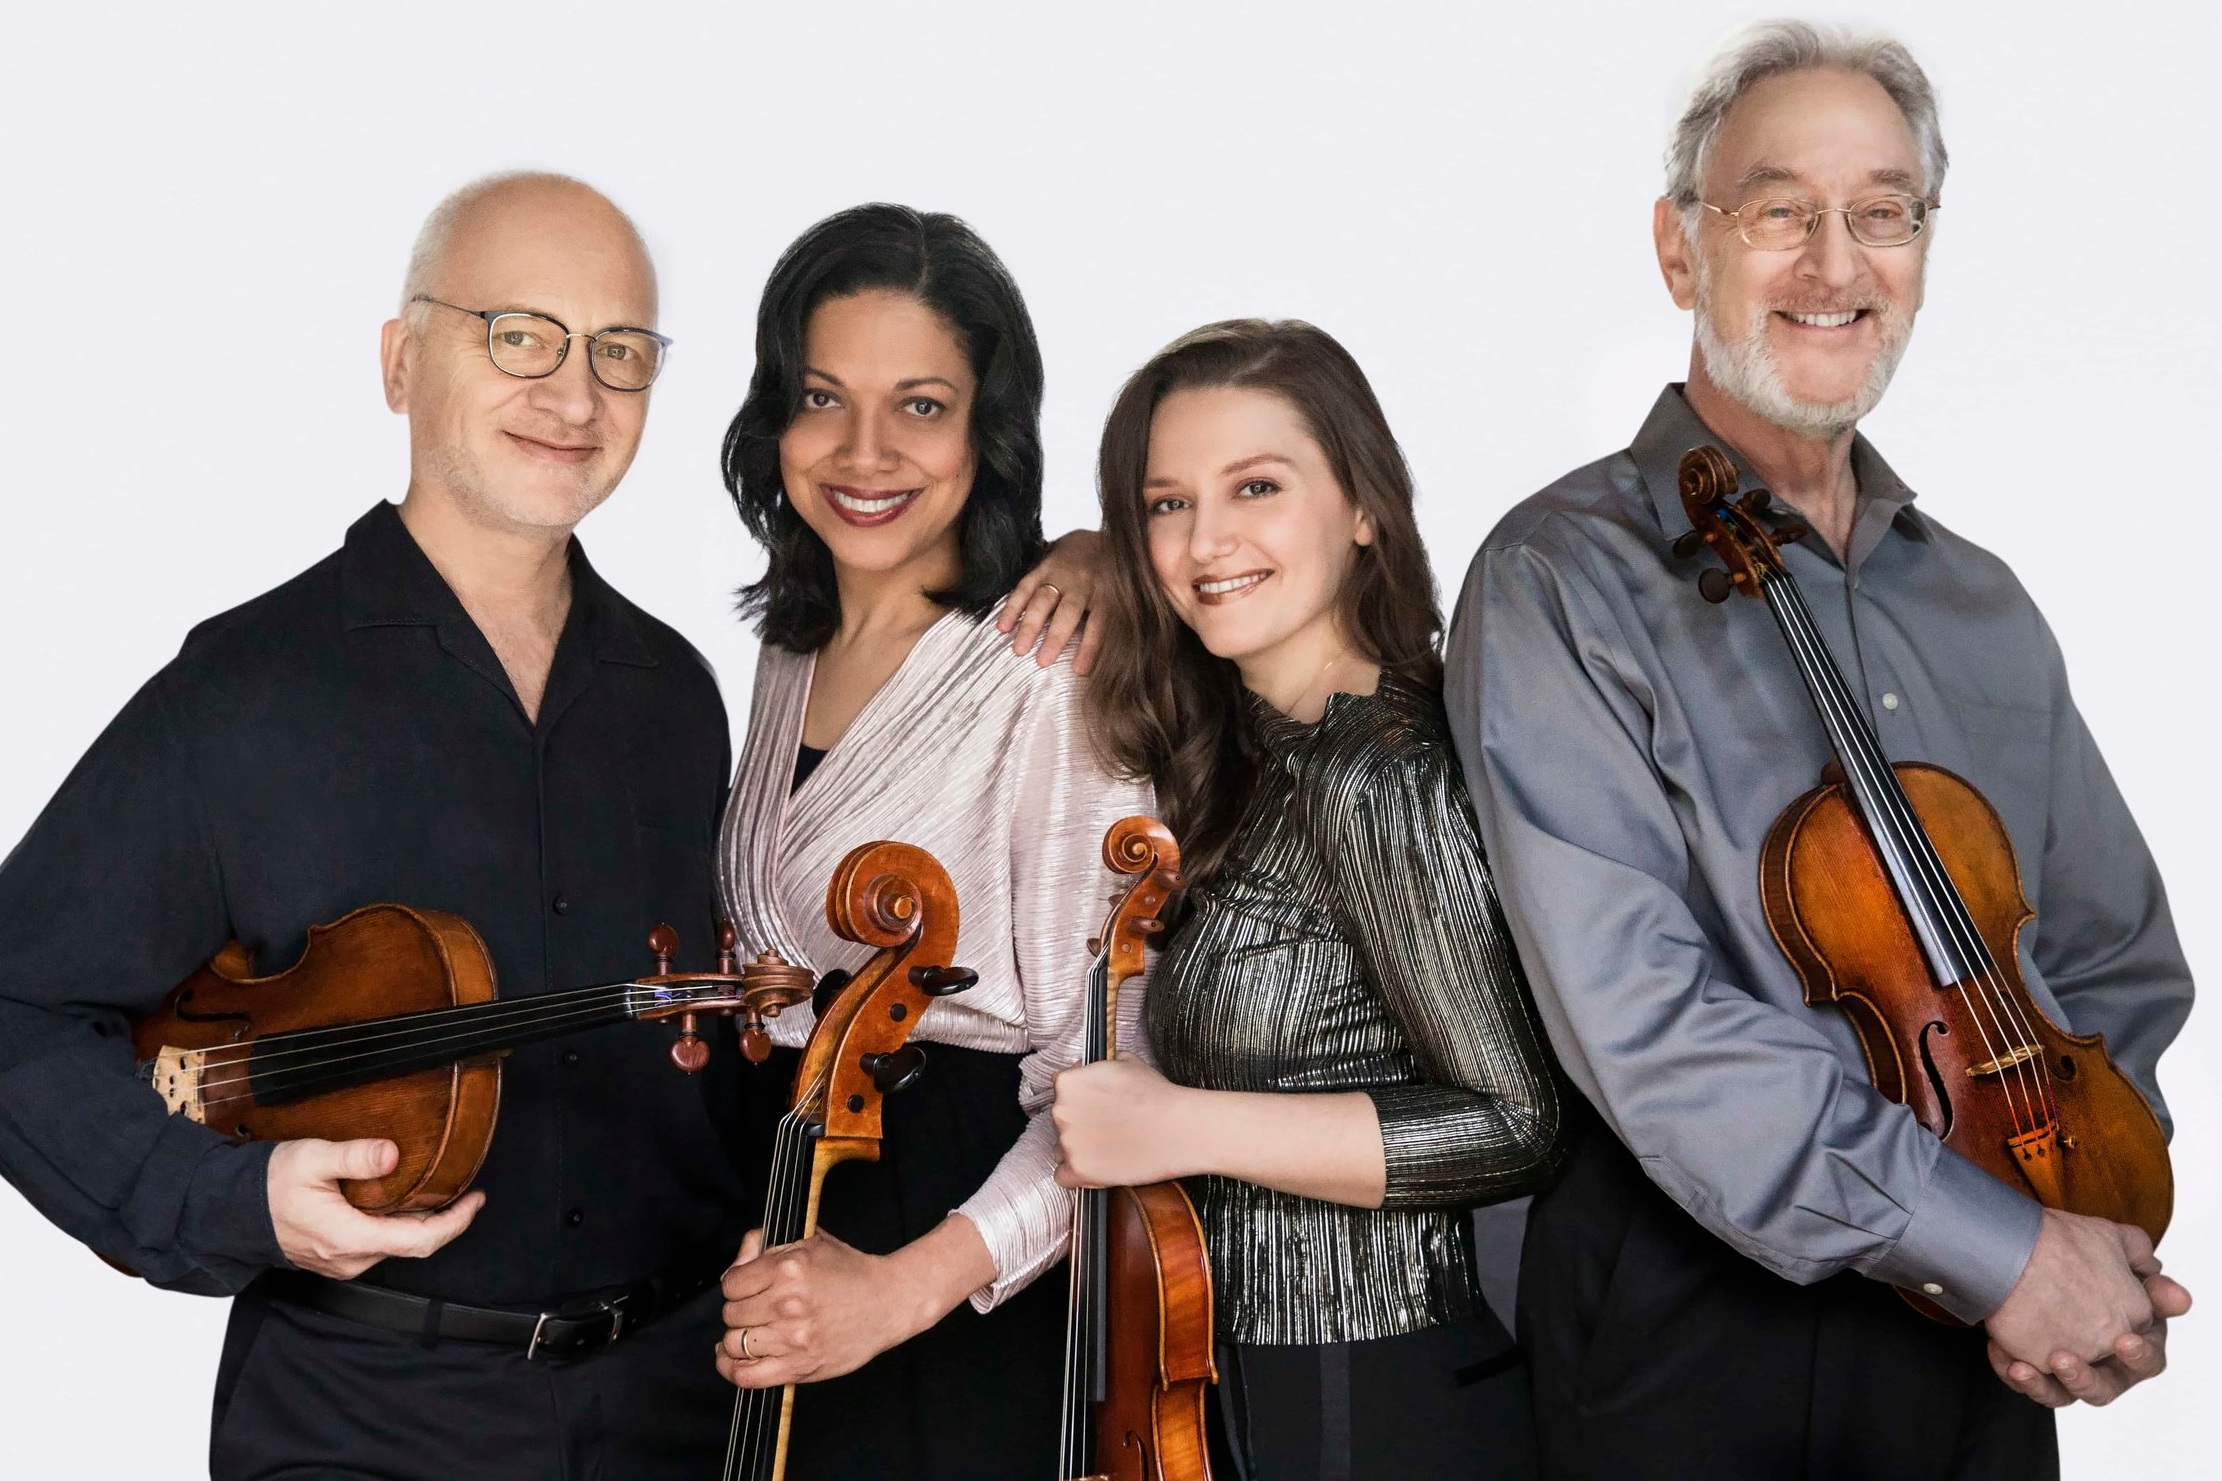 JUILLIARD STRING QUARTET 3 Concerts Sep 26-29 -